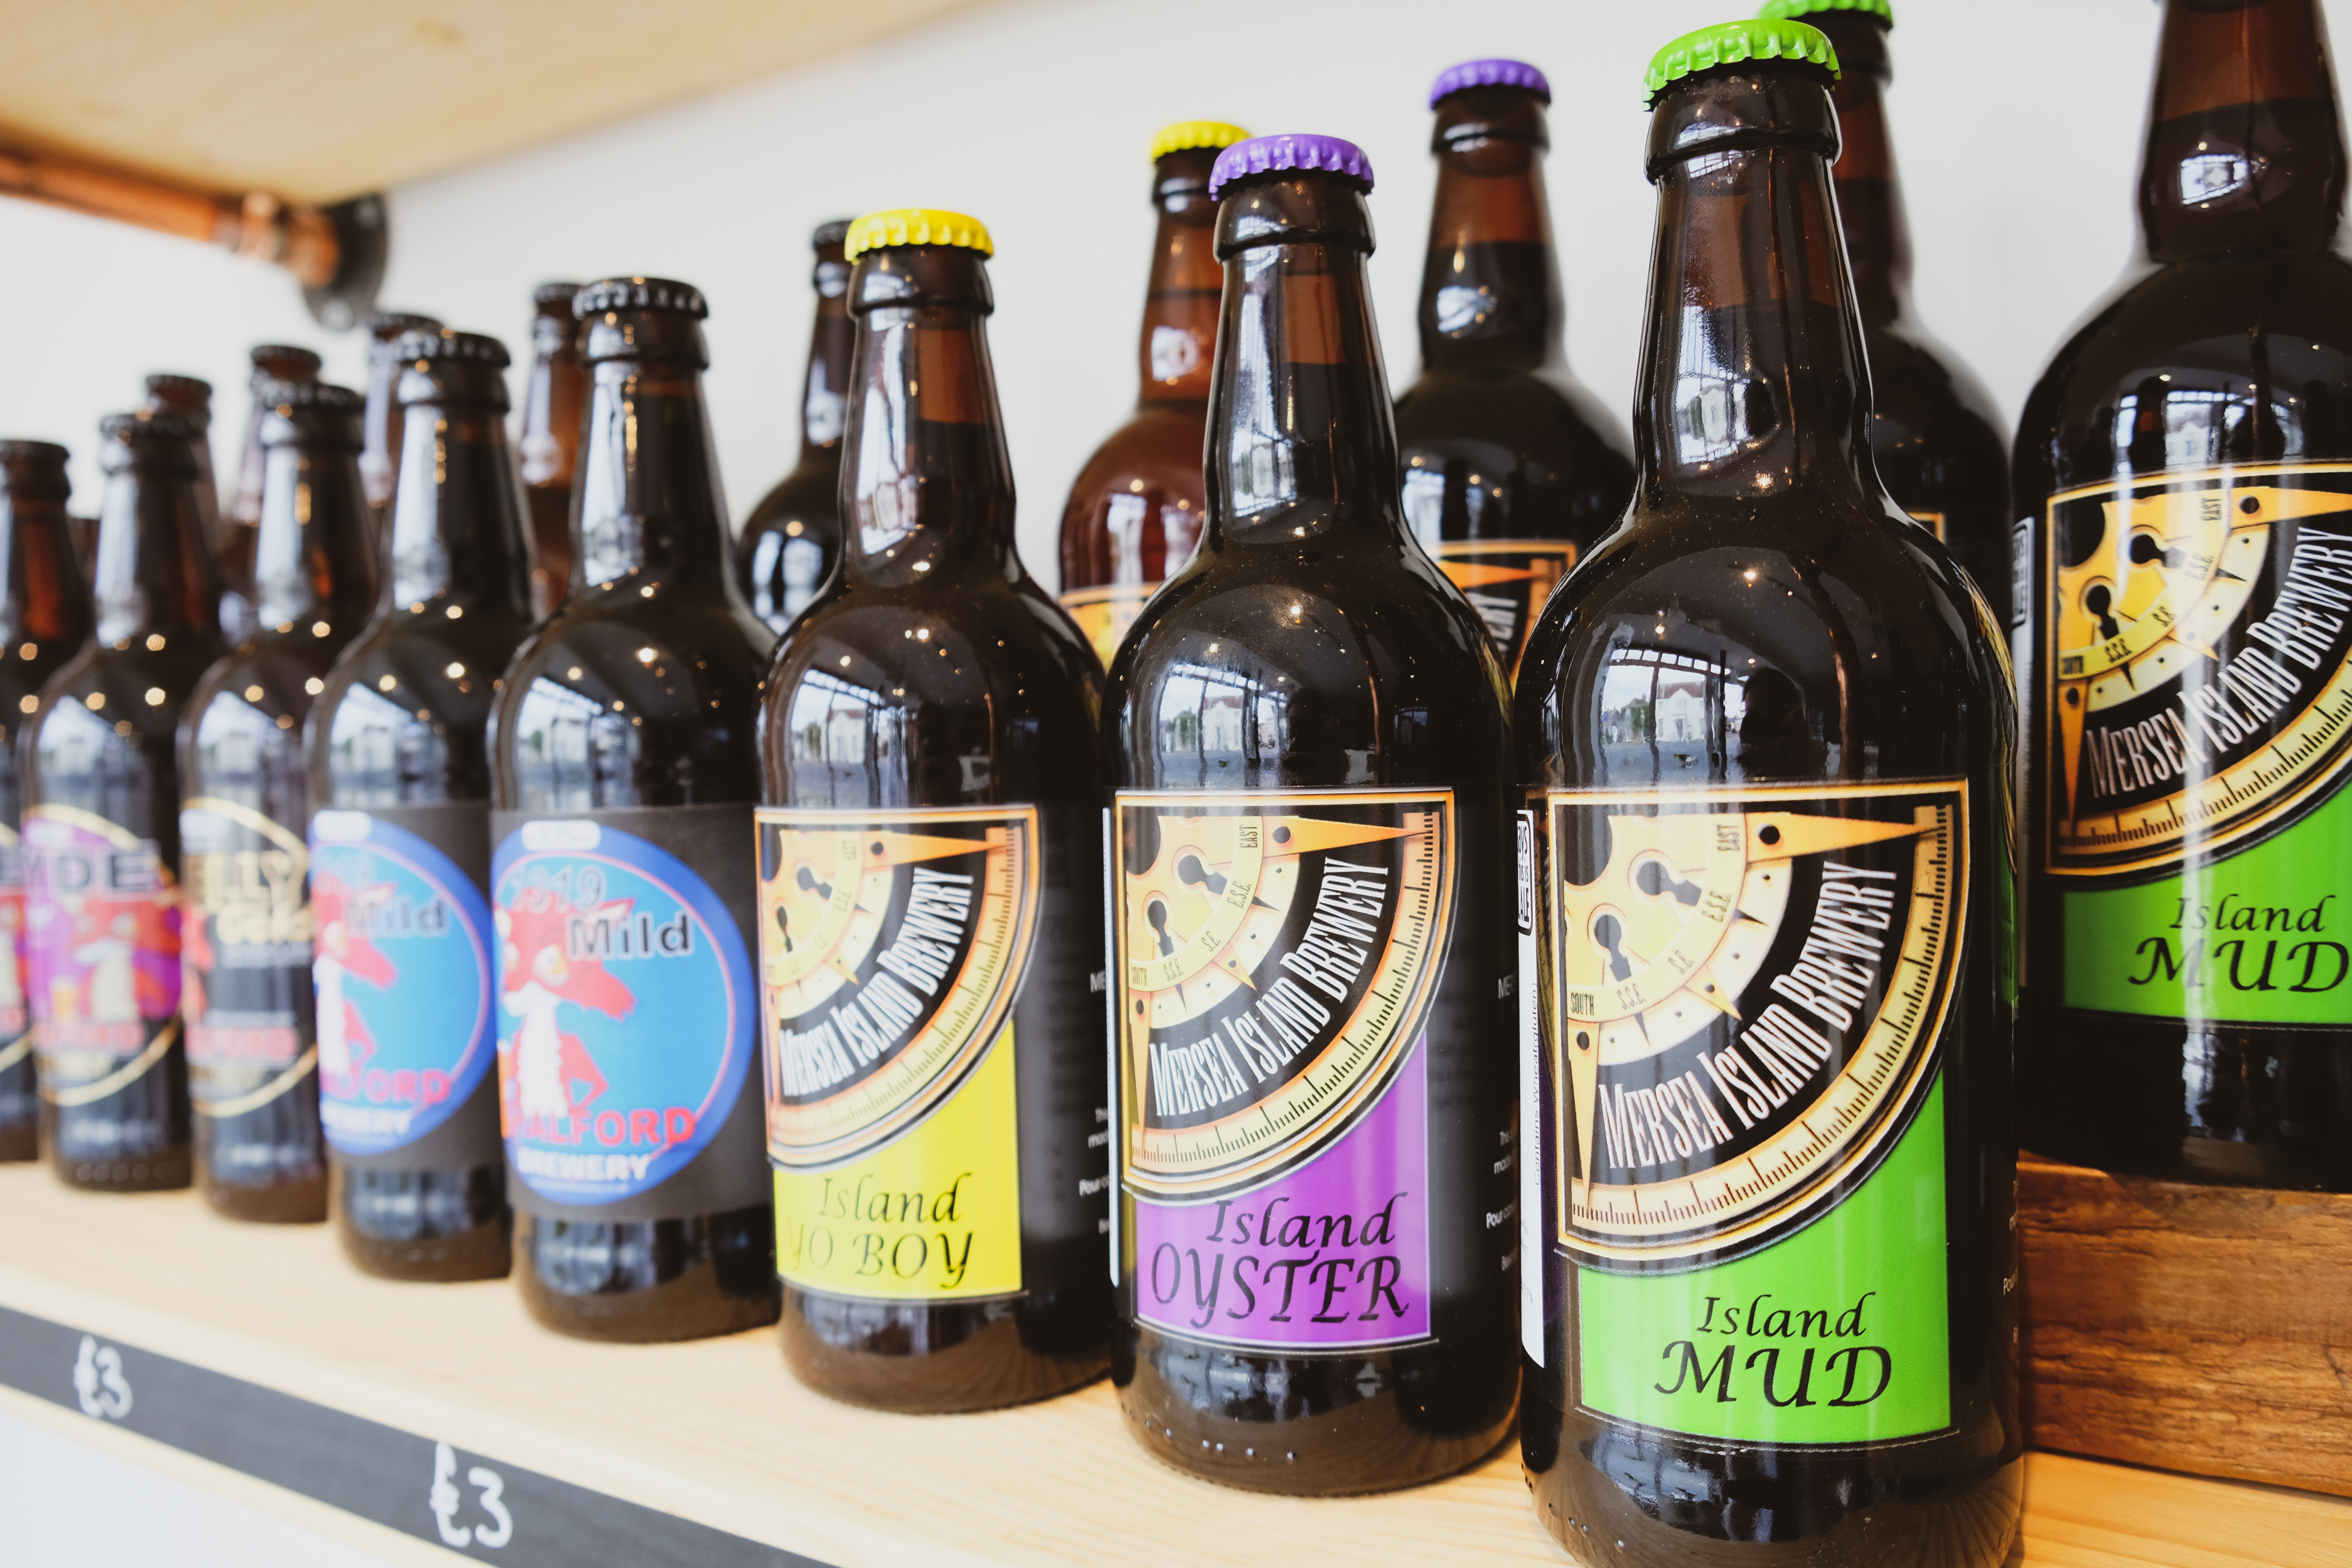 Mersea Island Brewery beer range available at the Essex Produce Co. in Kelvedon, Essex.